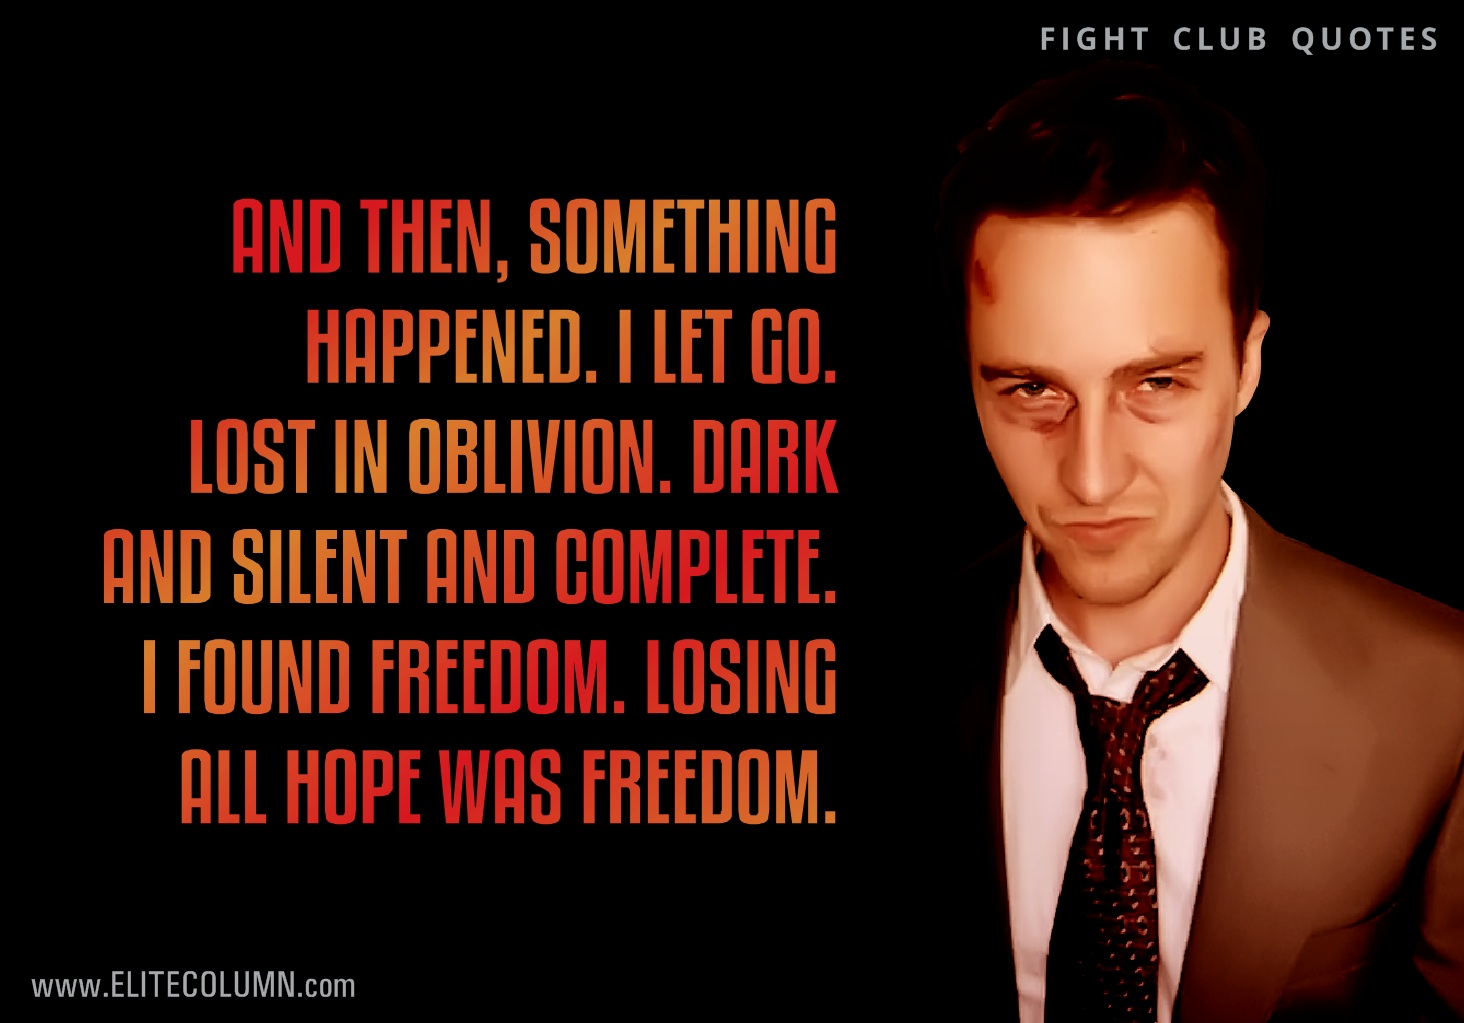 Fight Club Quotes (8)